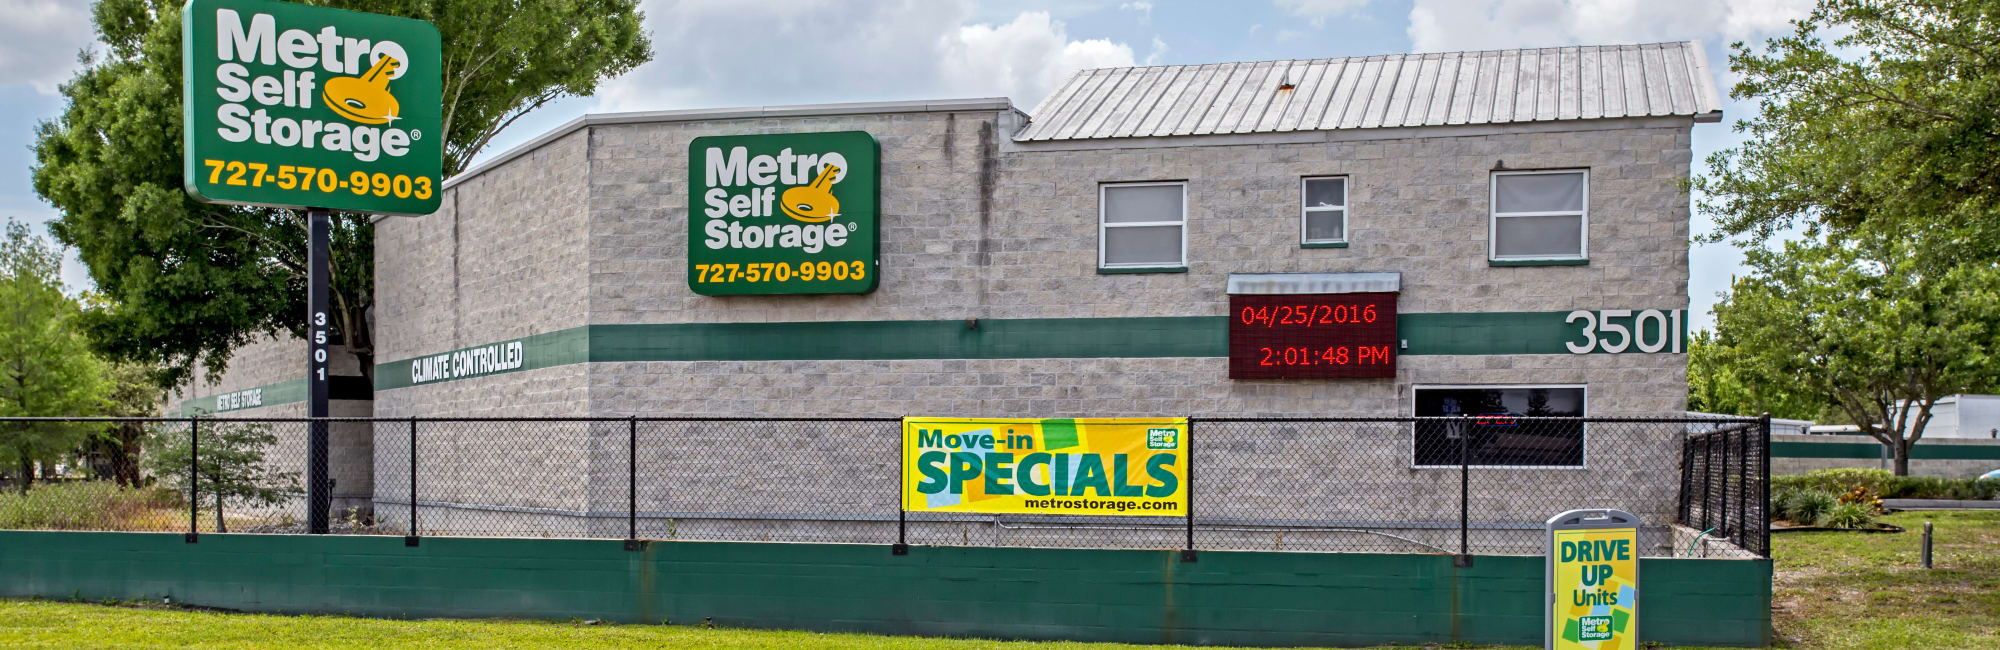 Metro Self Storage In Pinellas Park, FL